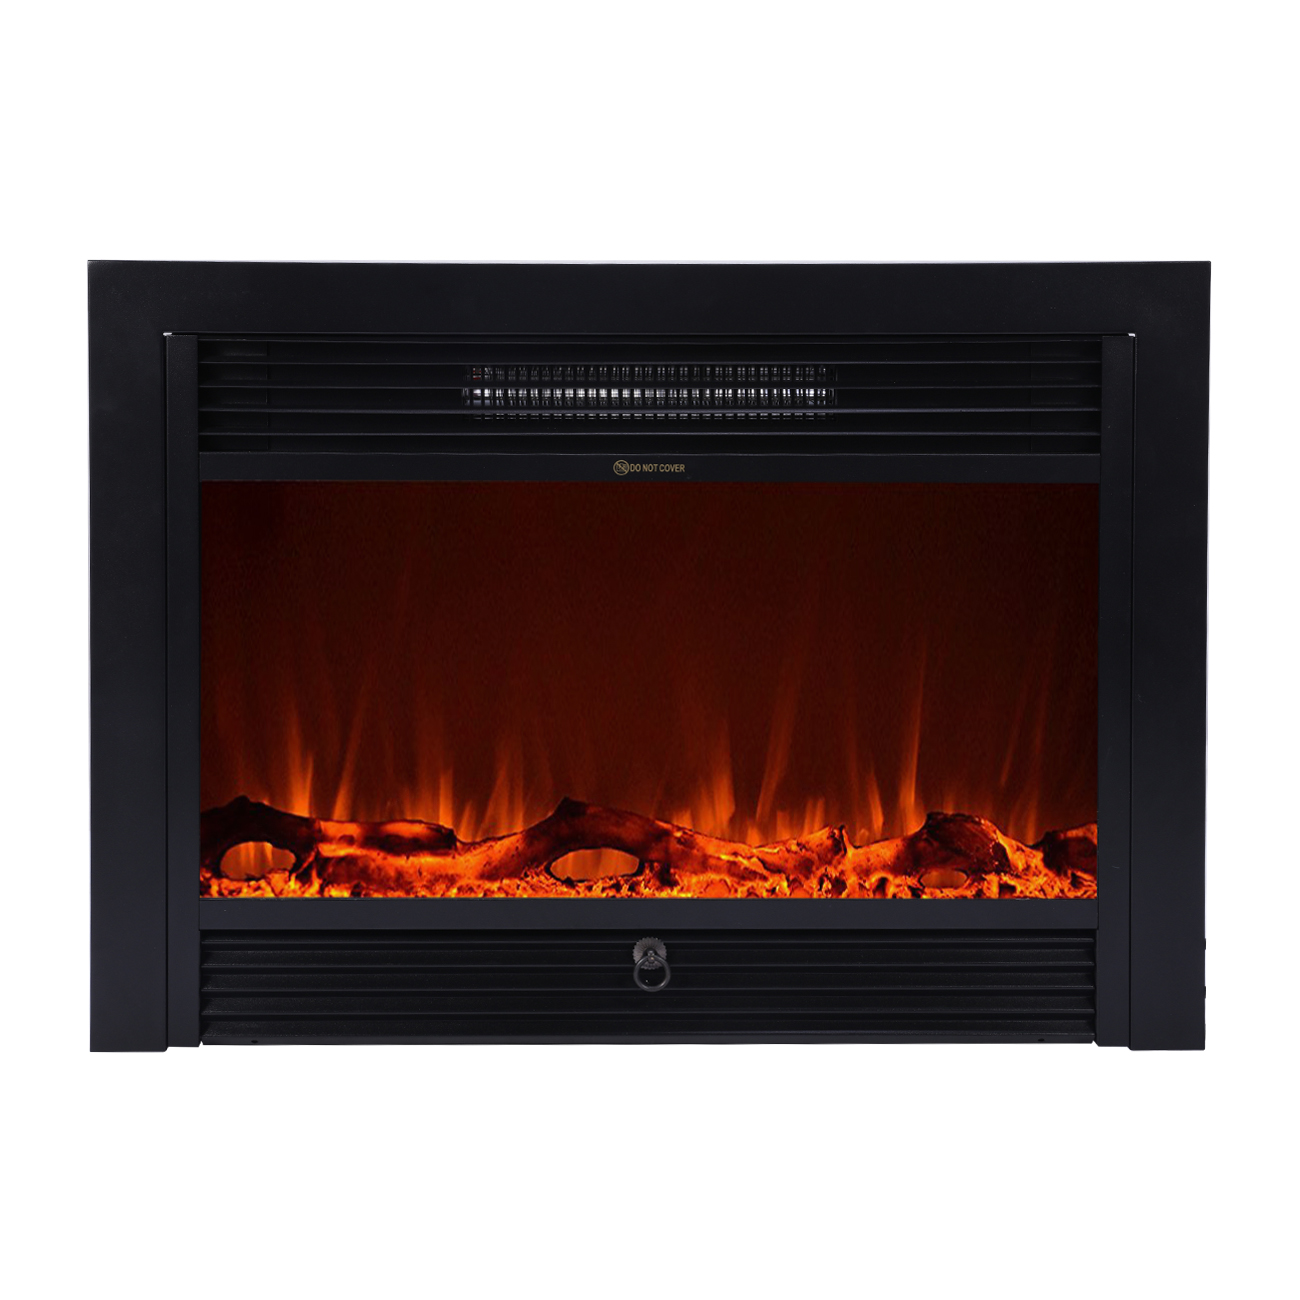 """Oslamp 28.5"""" inch Inserted Electric Wall Mount Fireplace Heater with Remote Control Embedded"""